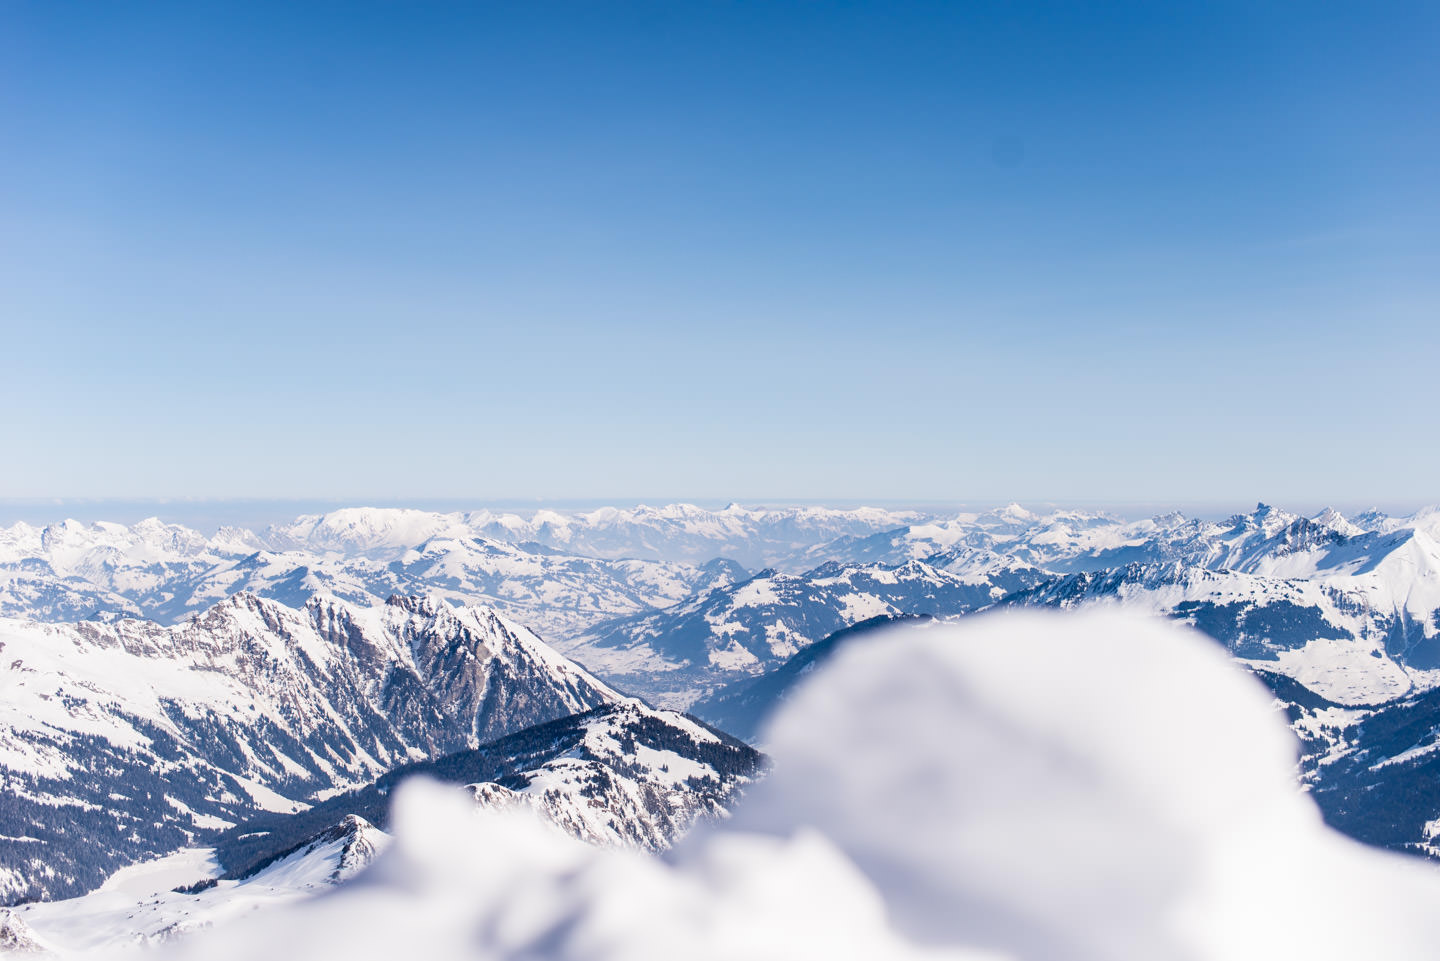 Blog-Mode-And-The-City-Lifestyle-Parenthese-Enchantee-Gstaad-Glacier-3000-Alpes